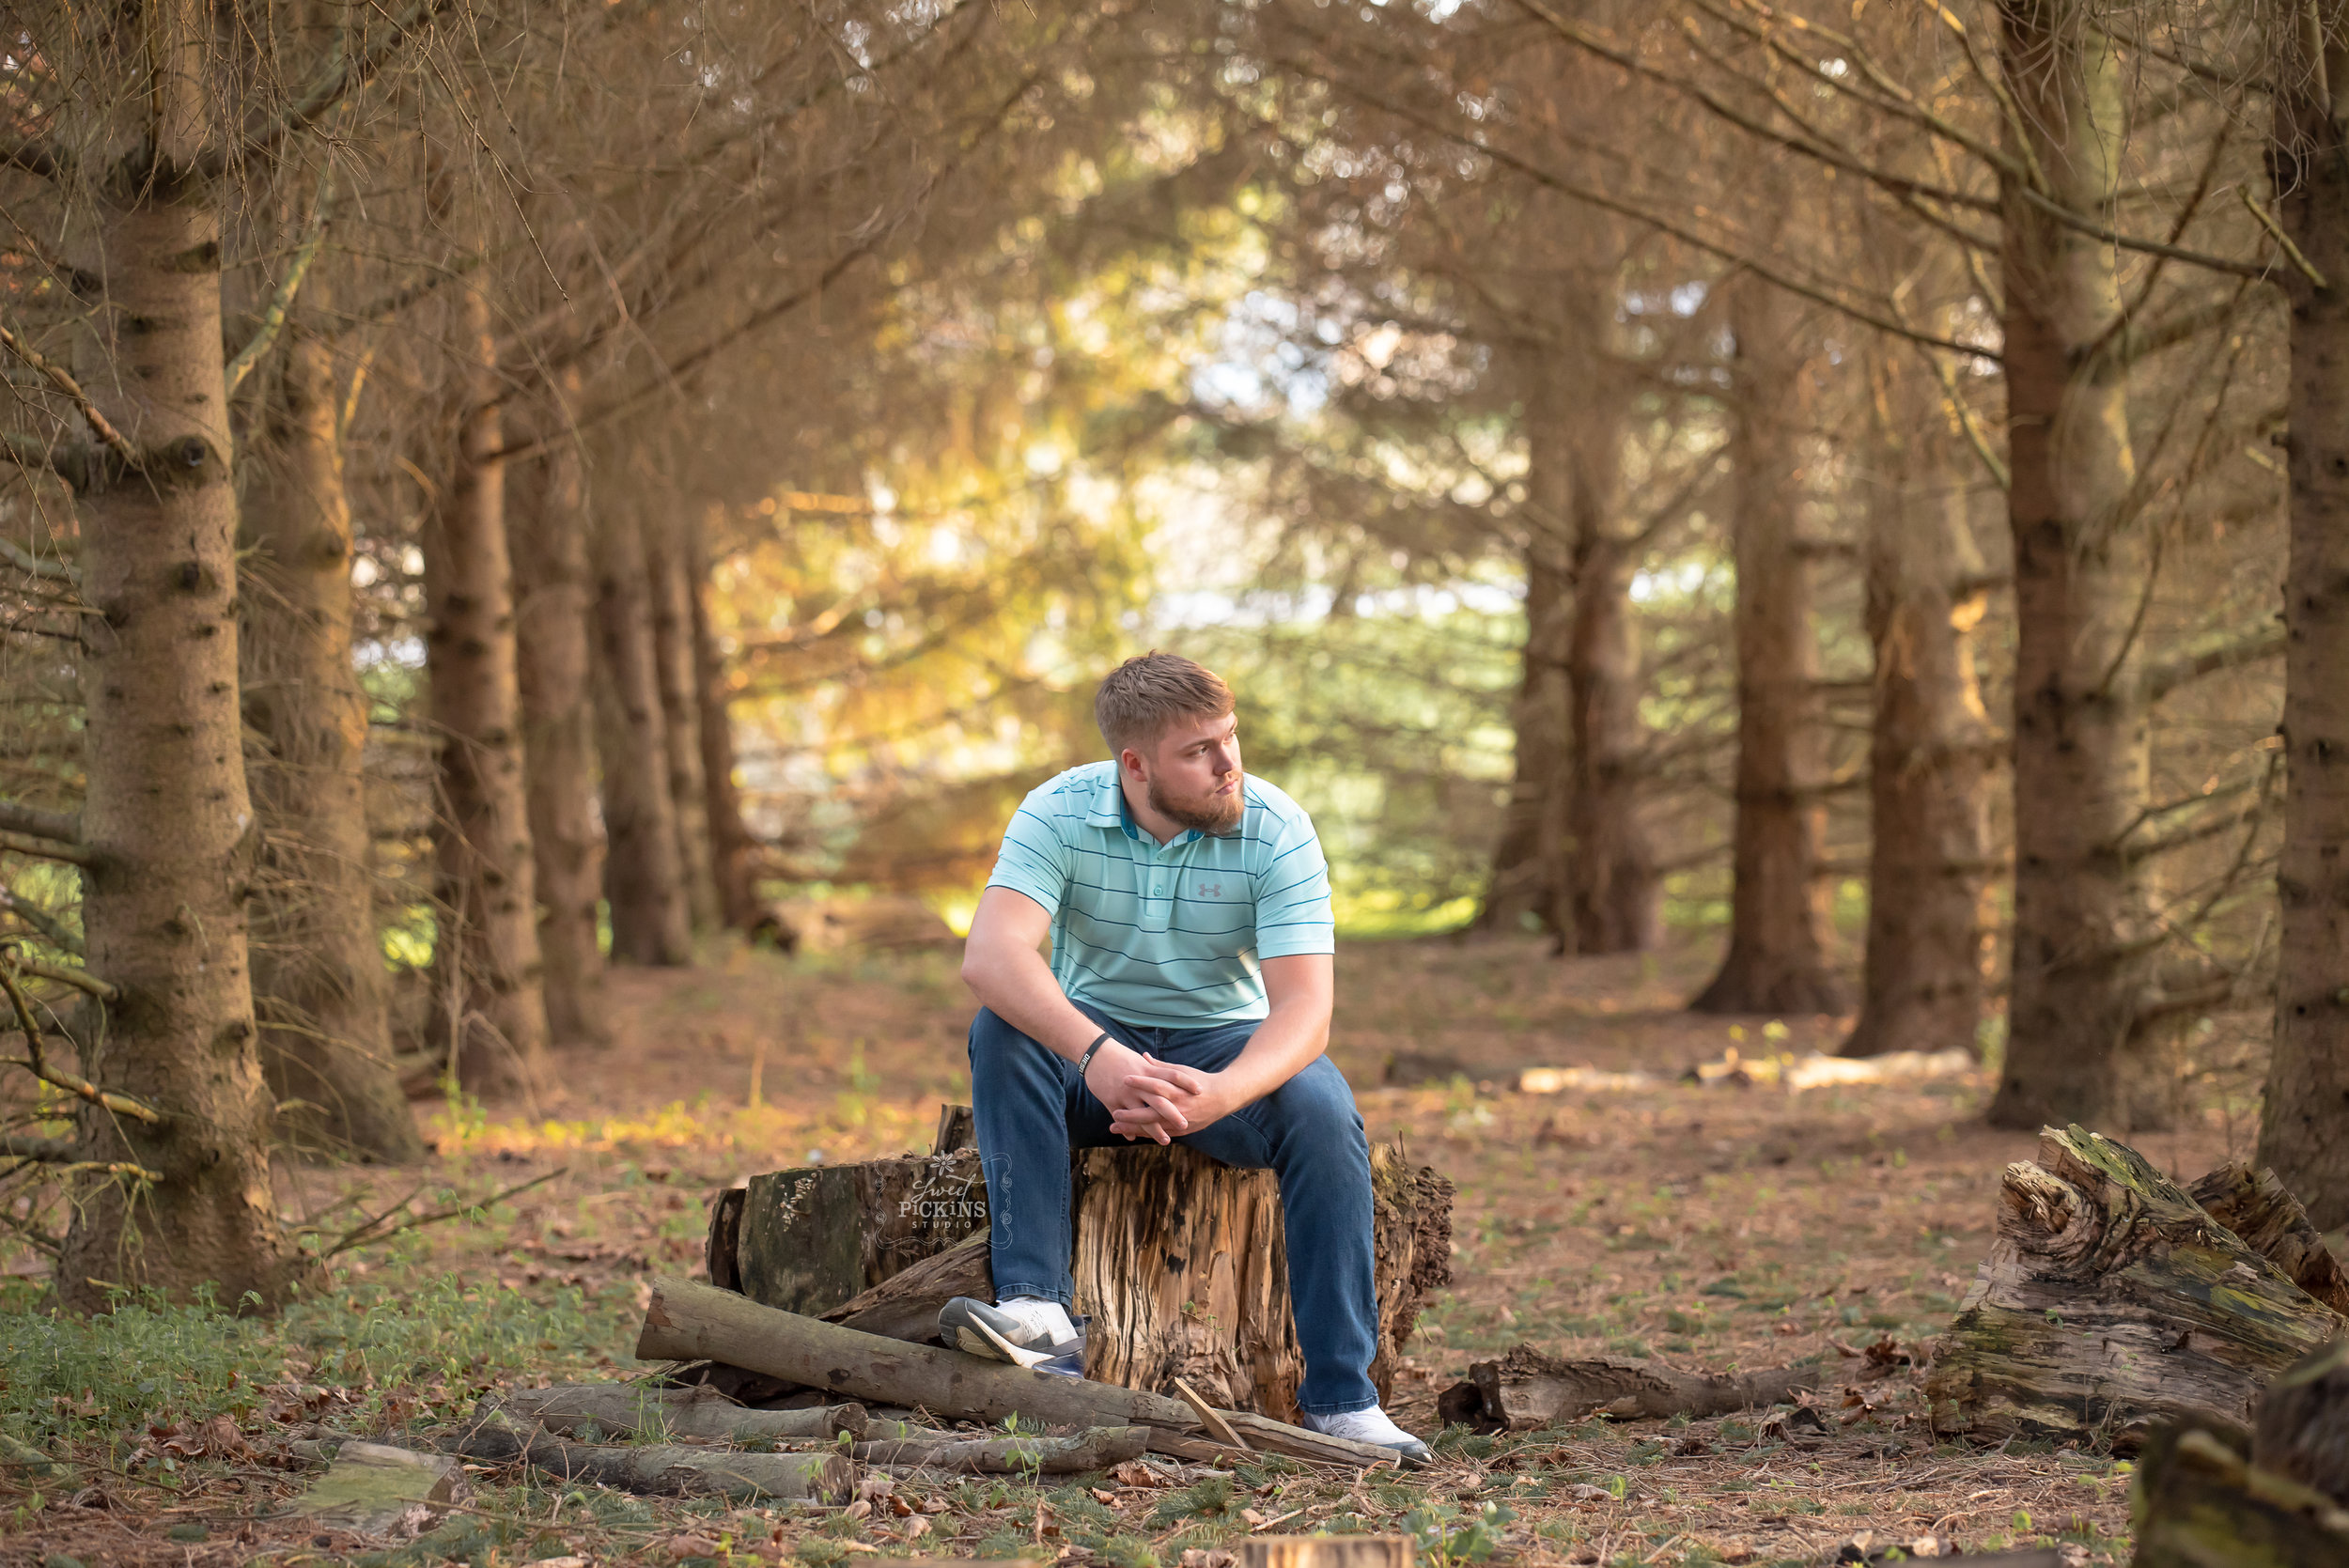 Class of 2019 Senior Guy Session by Sweet Pickins Studio | Forest Trees during Sunset Location